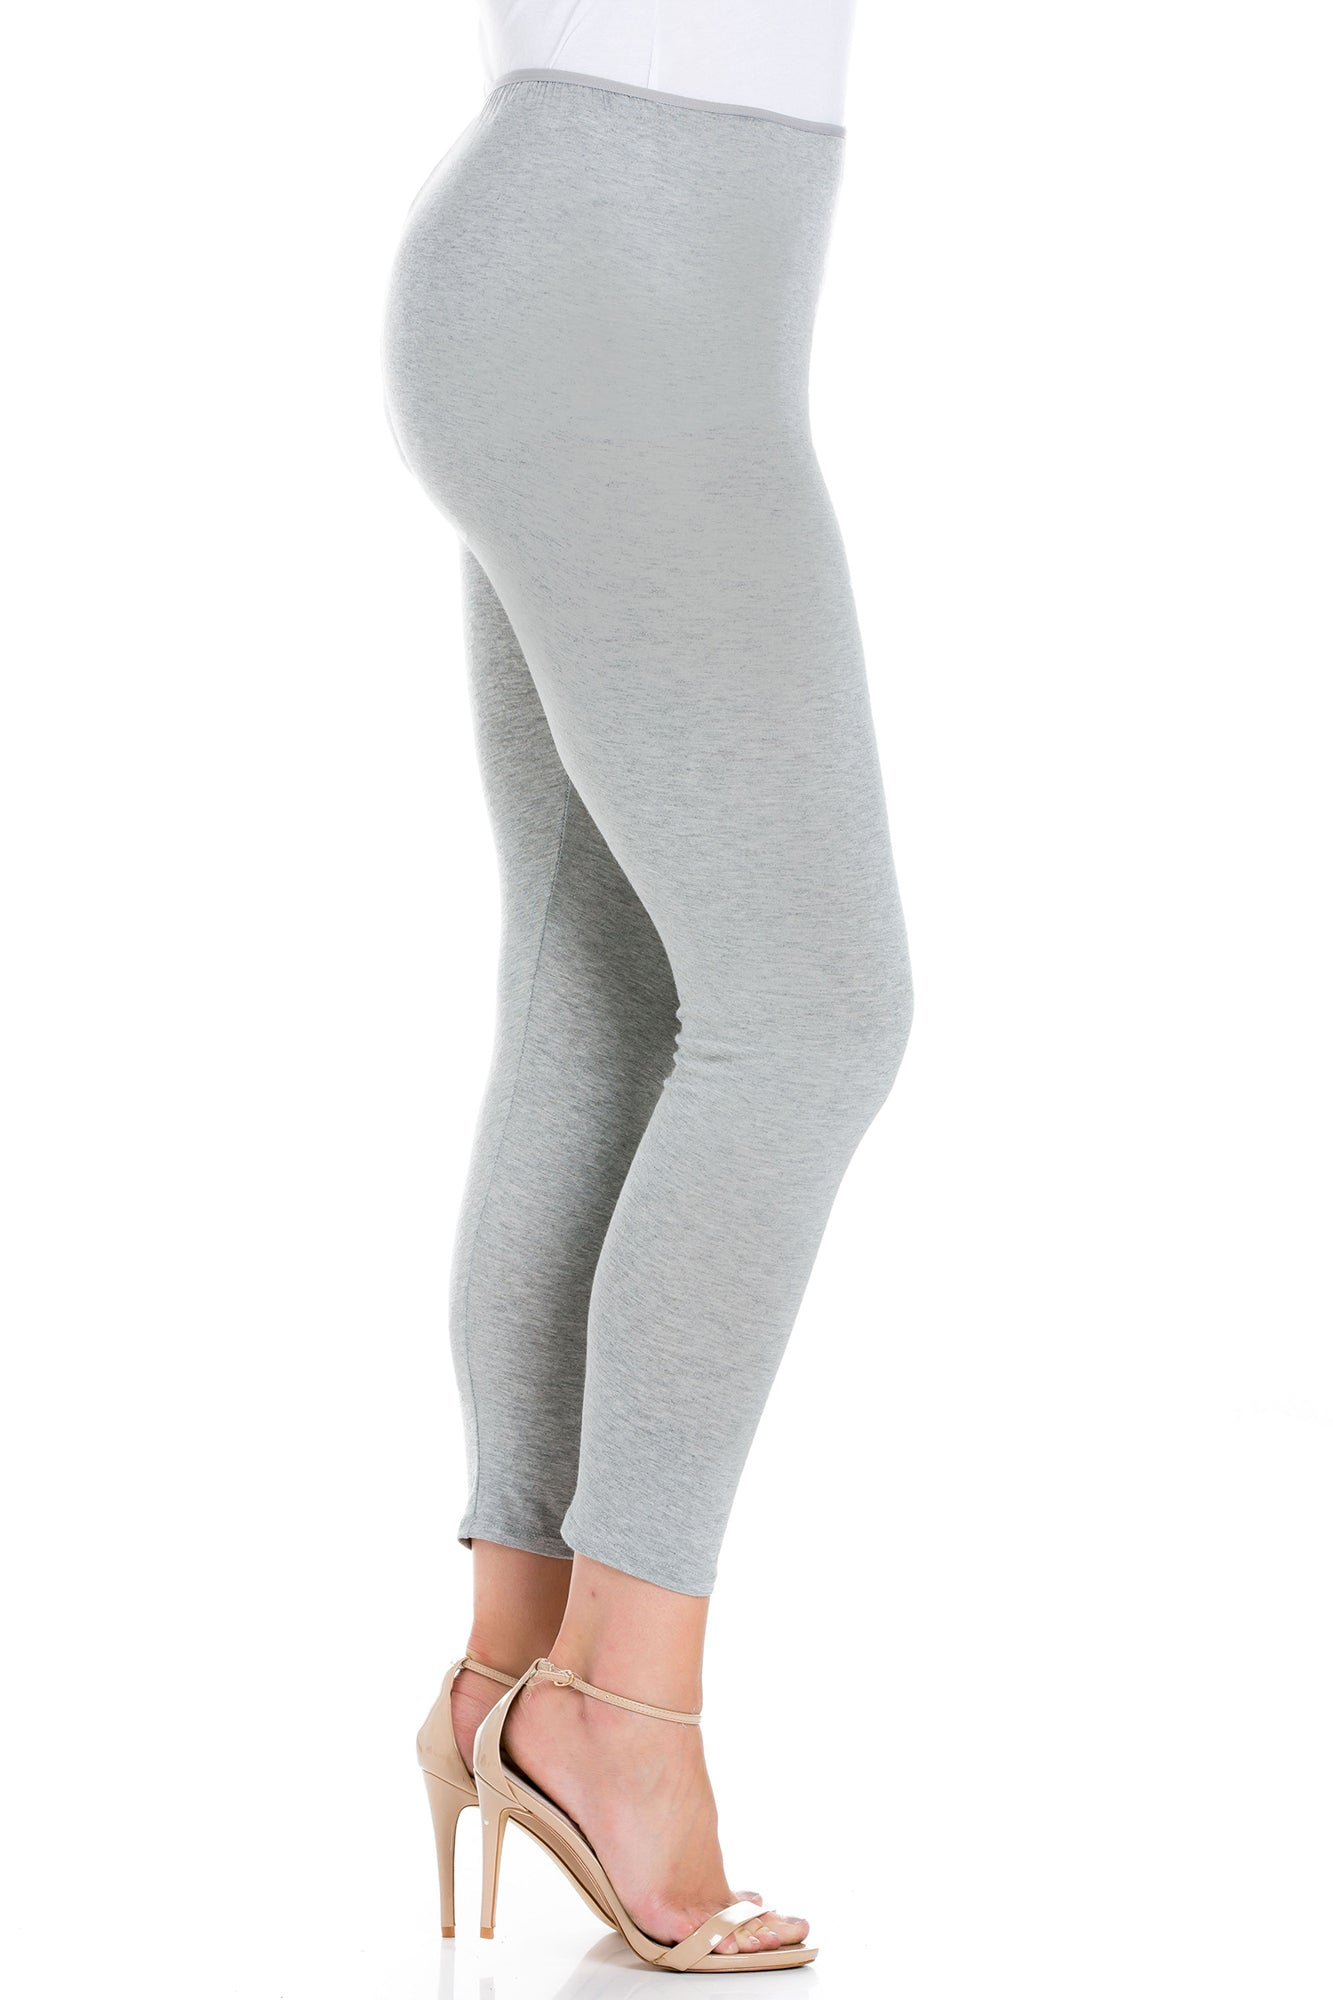 24seven Comfort Apparel Womens Comfortable Ankle Length Leggings-PANTS-24Seven Comfort Apparel-HEATHERGREY-S-24/7 Comfort Apparel